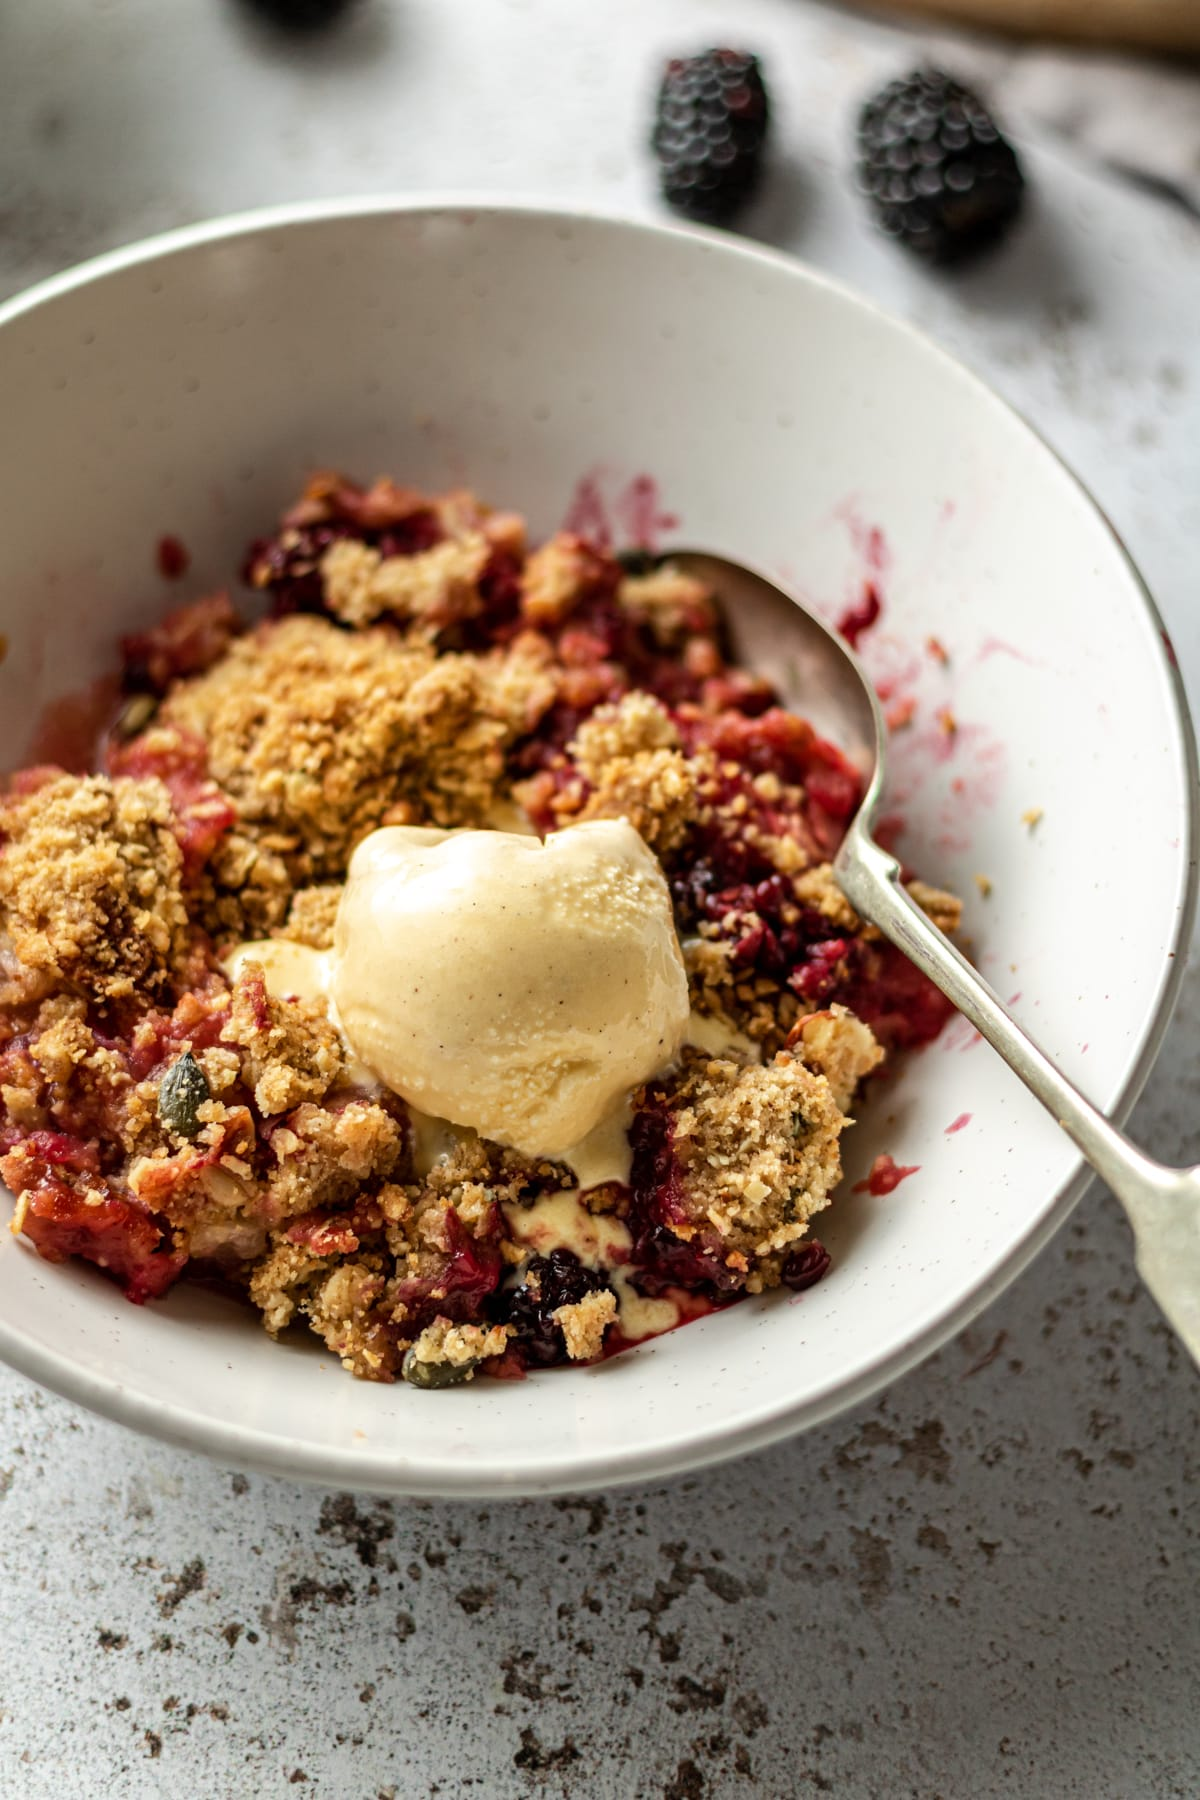 Crumble in a bowl with a scoop of ice cream